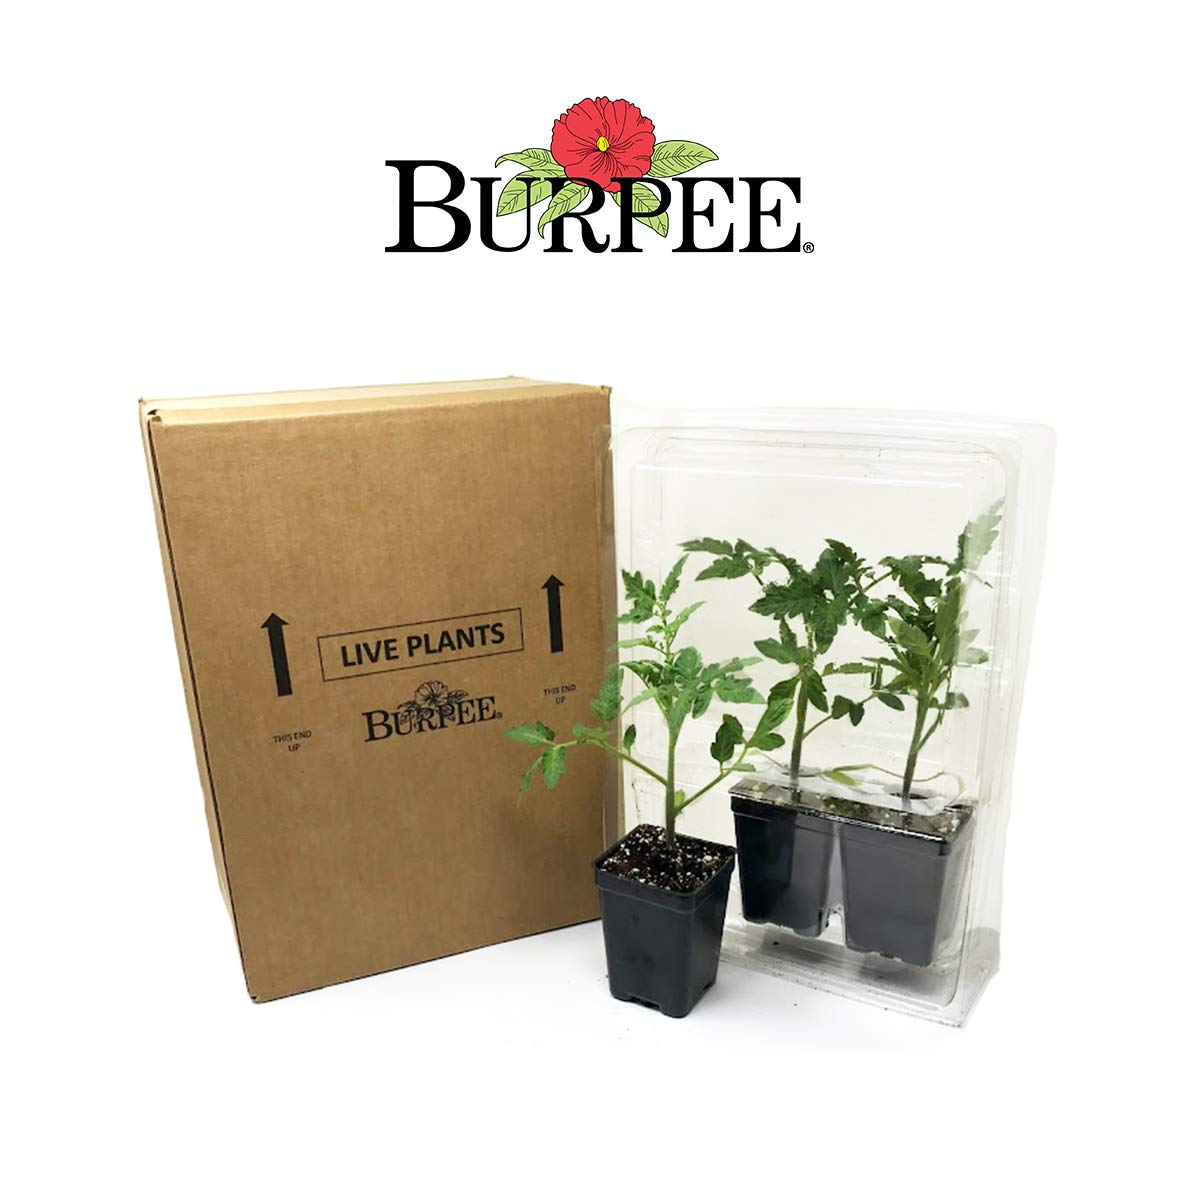 Burpee Big Boy' Hybrid Large Slicing Red Tomato Rich Flavor, 3 Live Plants | 2 1/2'' Pot